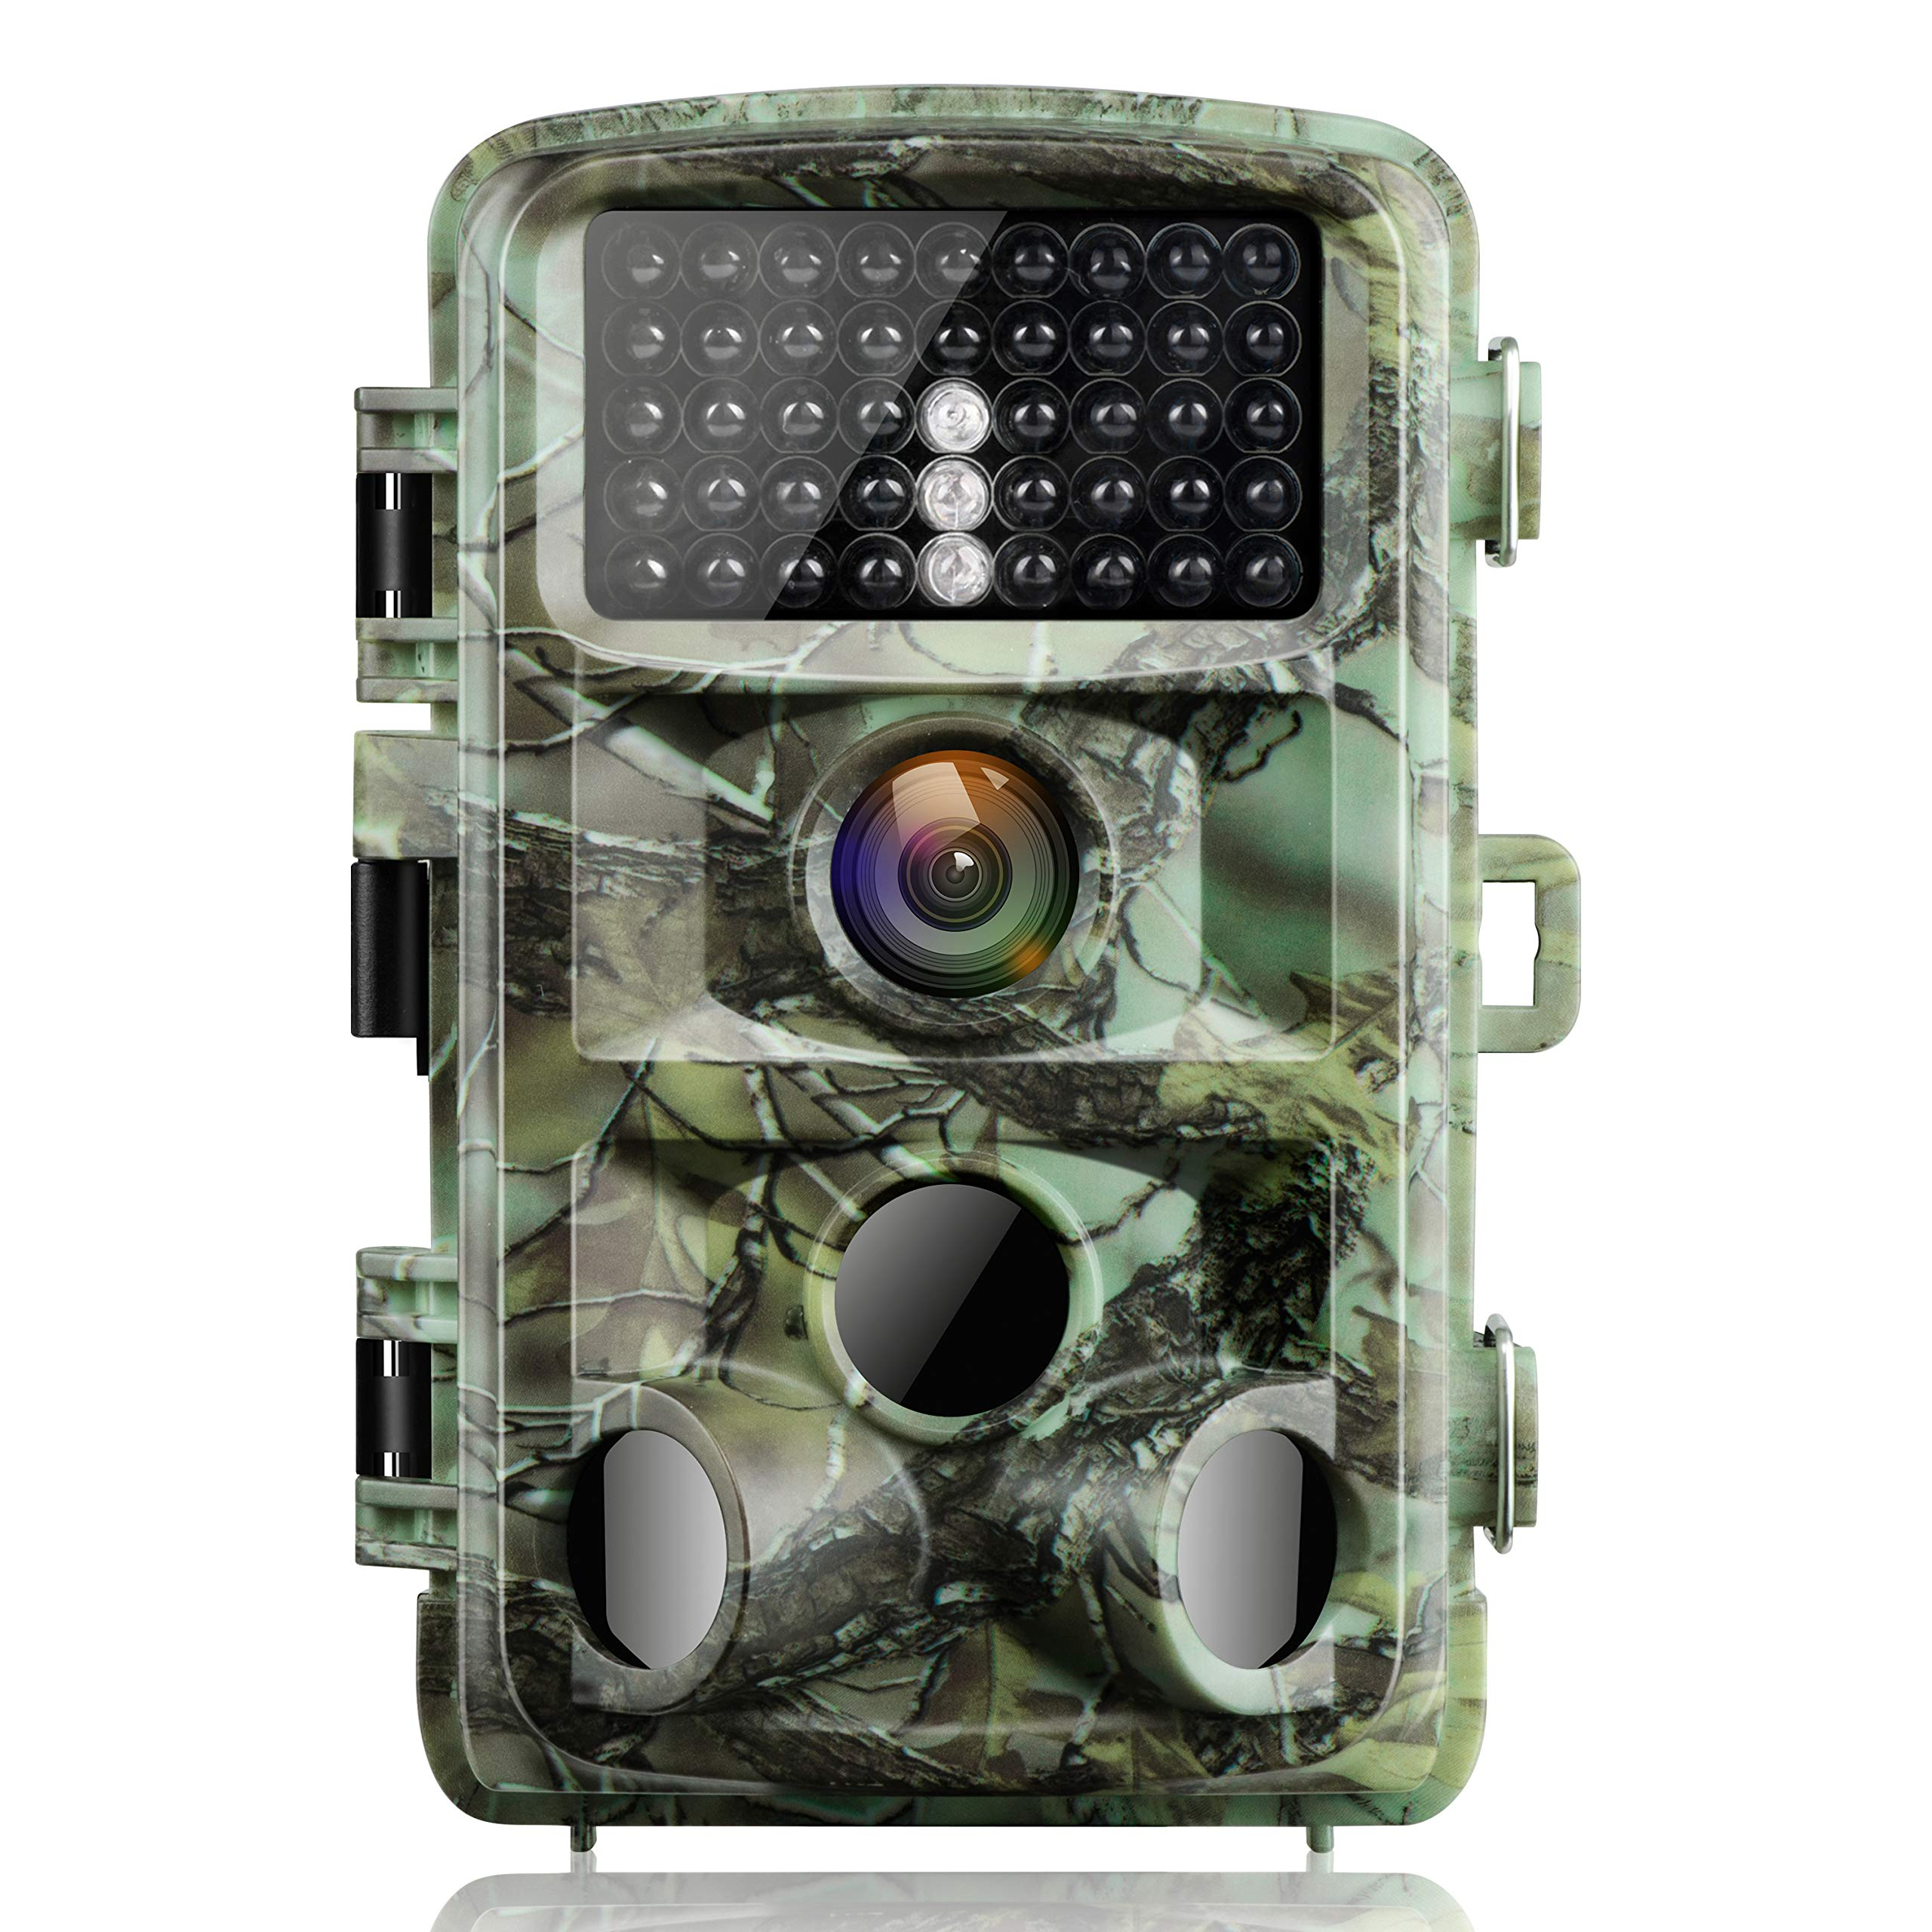 Campark Trail Game Camera 14MP 1080P Night Vision Waterproof Hunting Scouting Cam for Wildlife Monitoring with 120°Detecting Range Motion Activated 2.4'' LCD IR LEDs 3 PIR by Campark